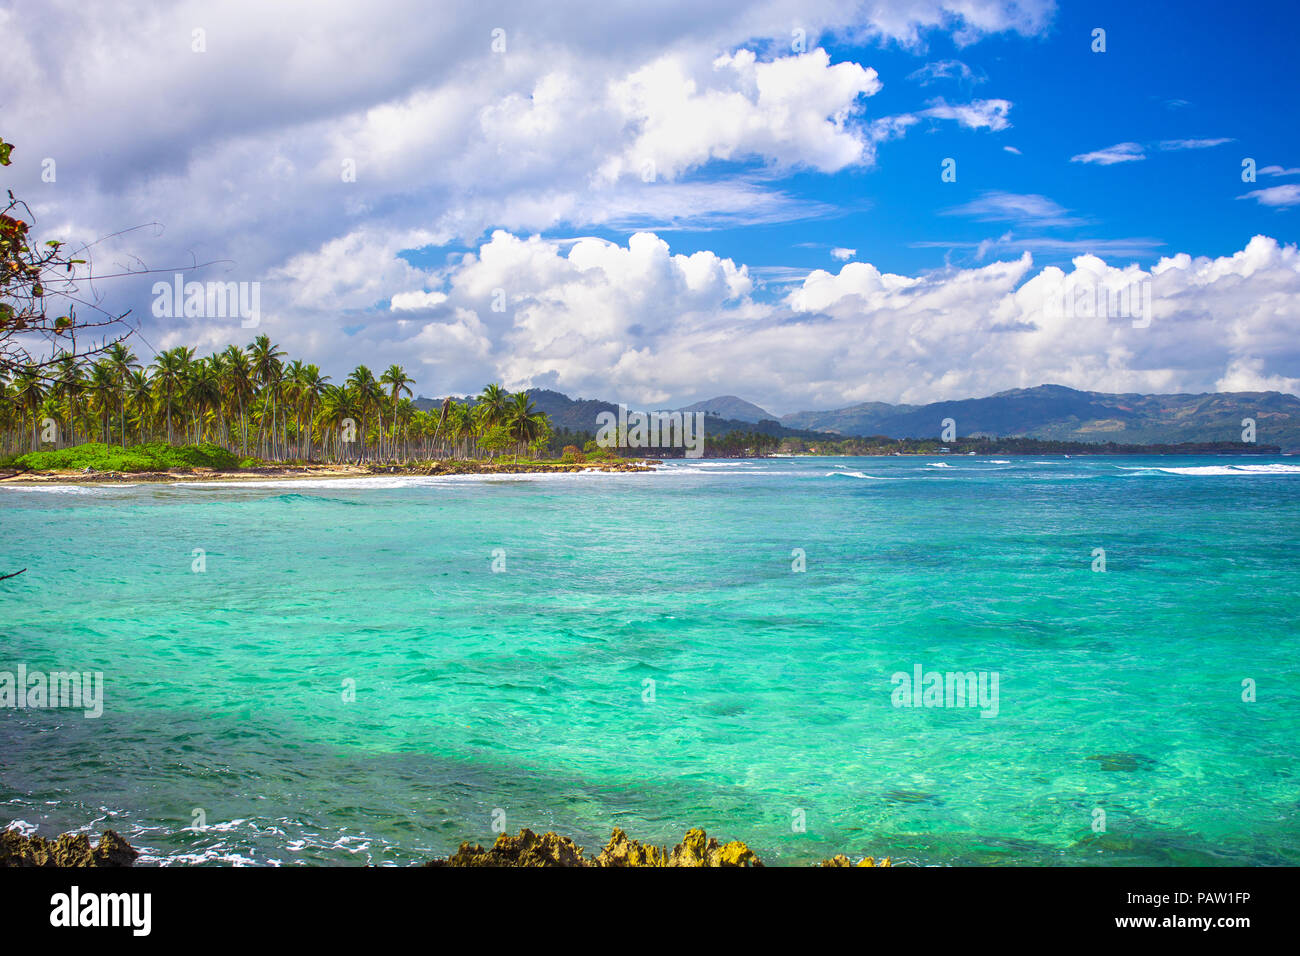 Caribbean sea surface summer wave background. Exotic water landscape with clouds on horizon. Dominican Republic nature relax. Travel tropical island r - Stock Image